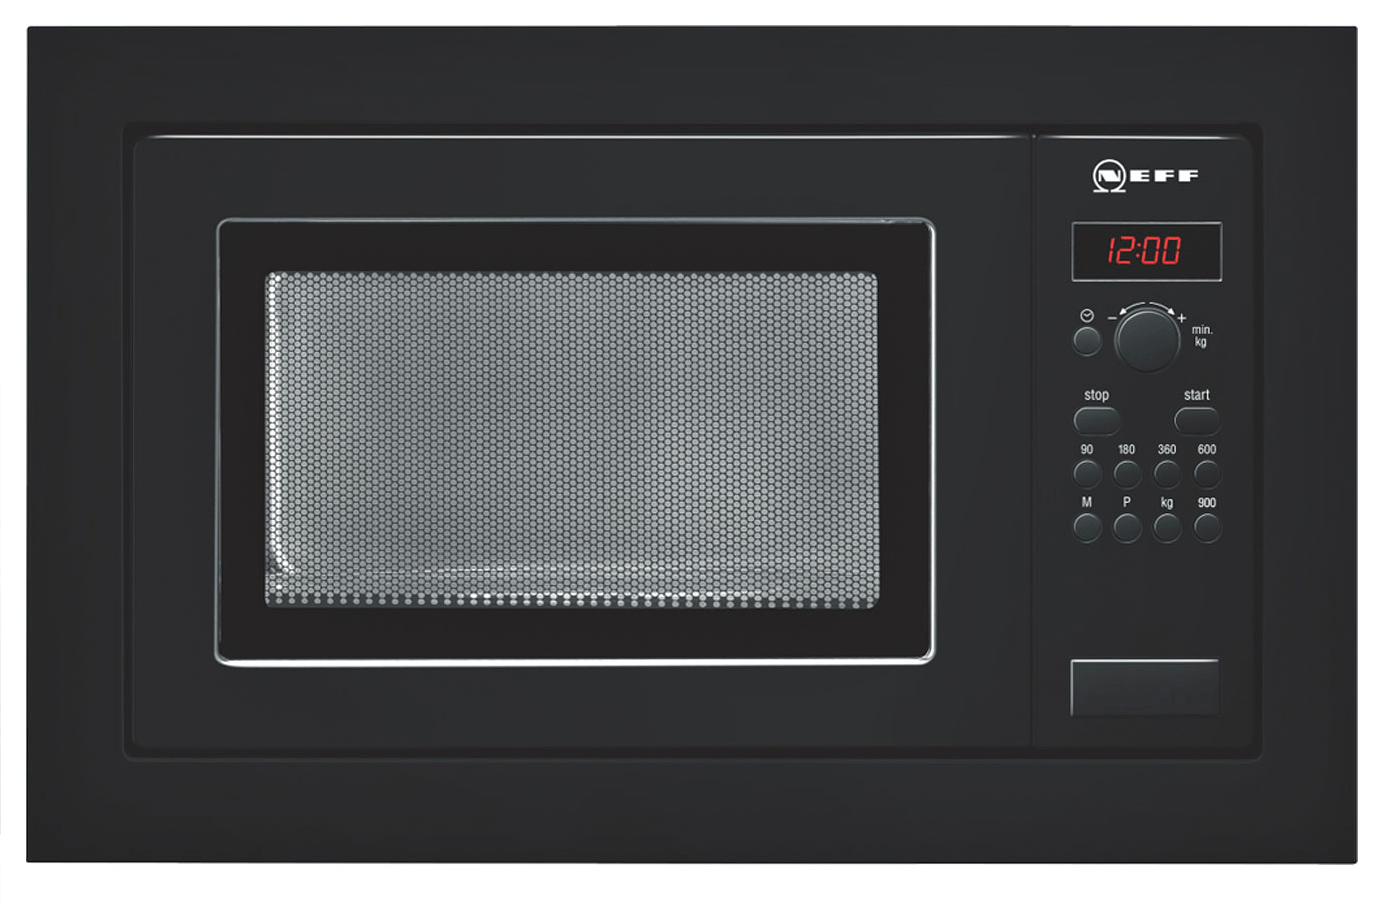 Integrated Microwave Buy Ovens In London Neff H56w20s0gb Integrated Microwave